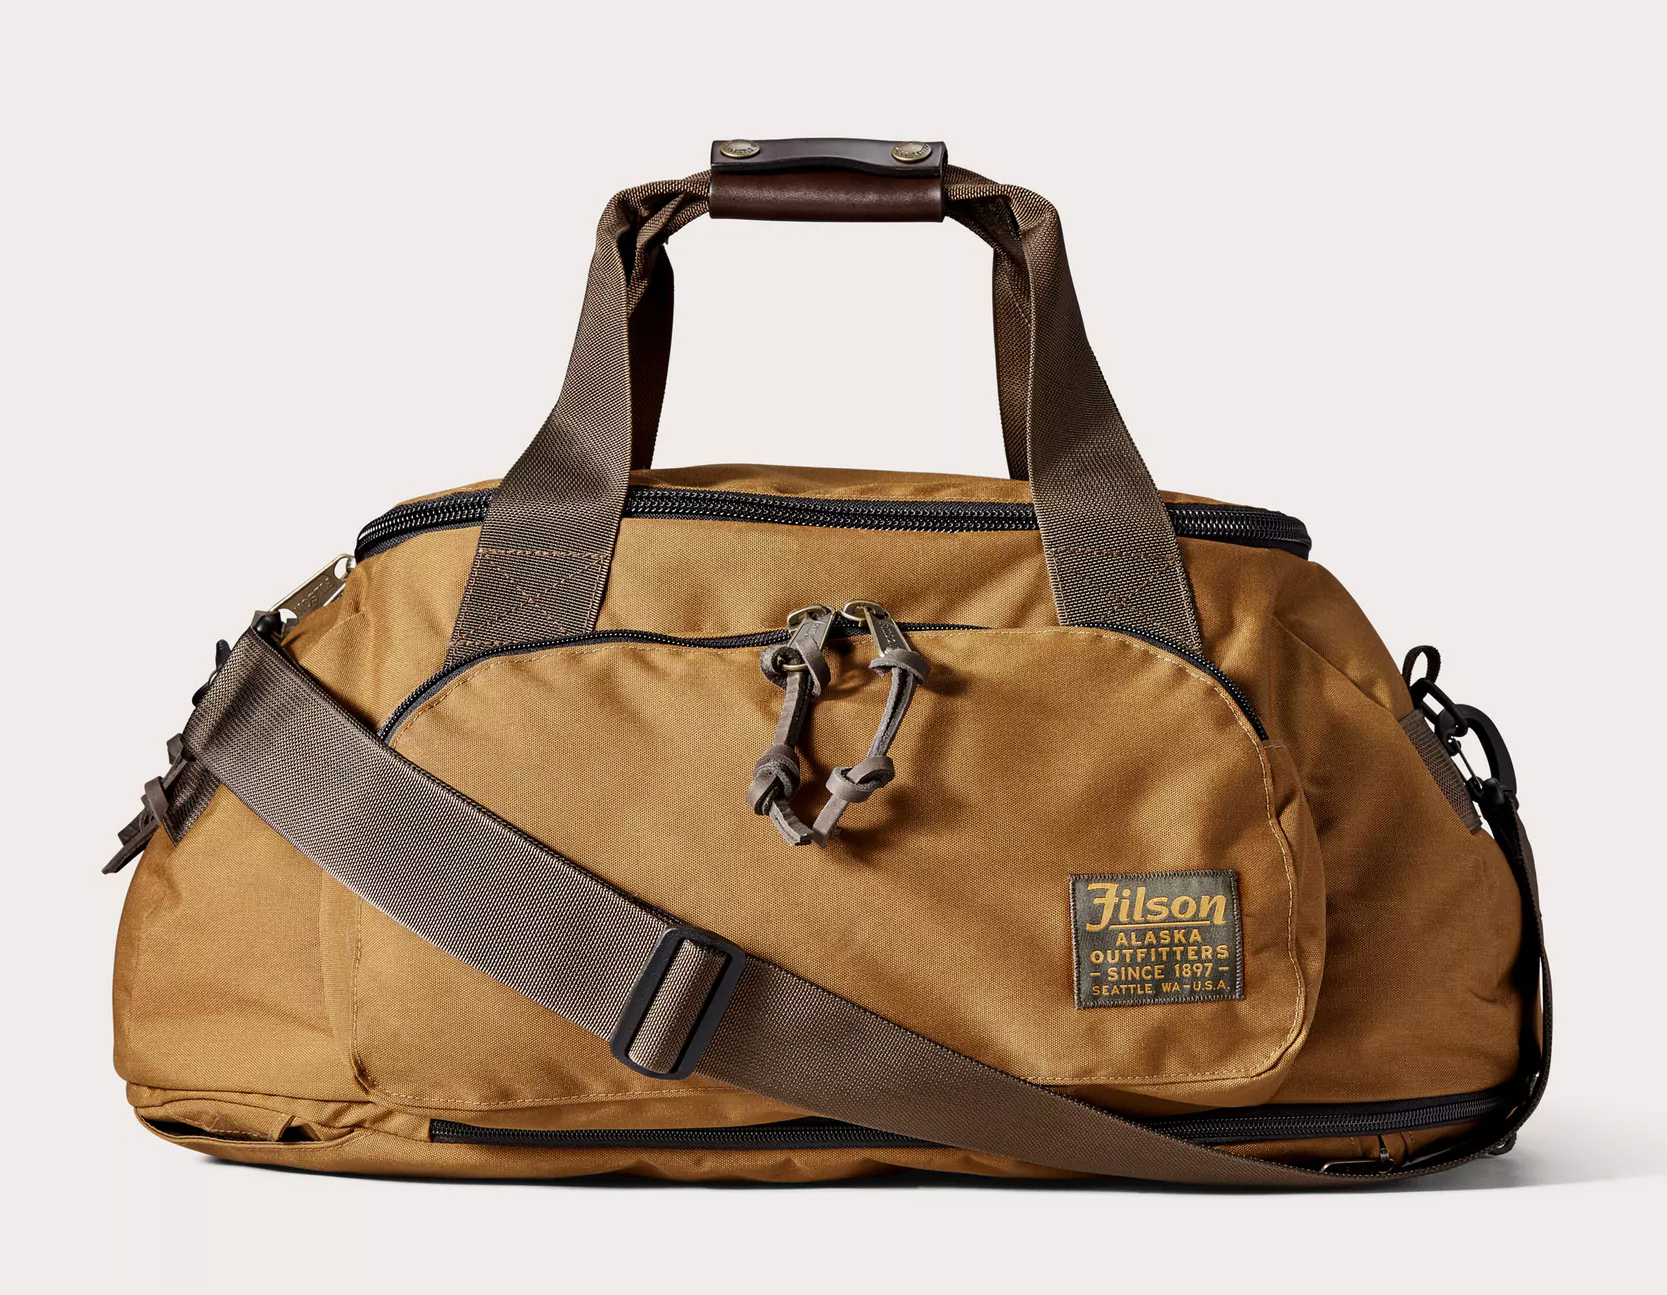 Carry This Ballistic Filson Duffel Any Way You Want at werd.com